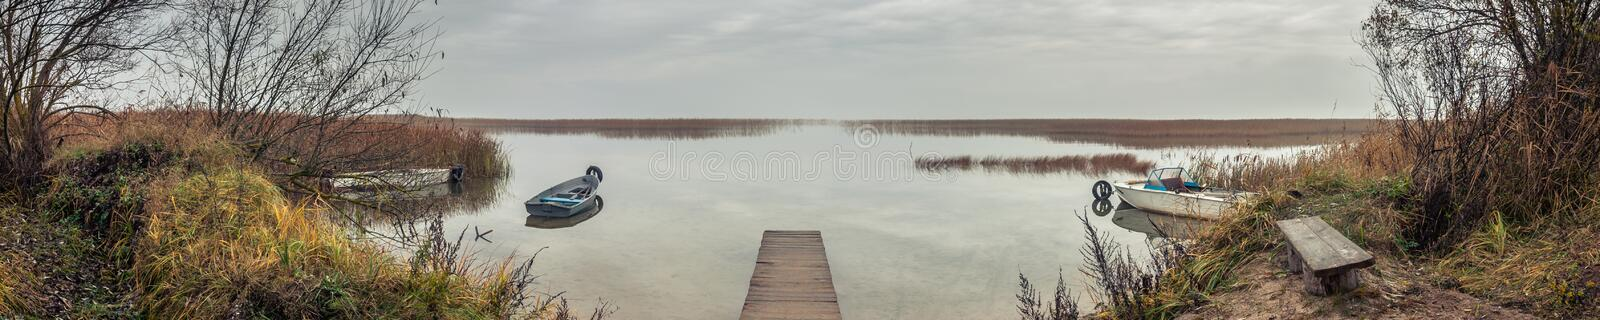 panoramic view from the coast to the lake bay with a wooden pier and boats in the autumn twilight in cloudy weather royalty free stock image